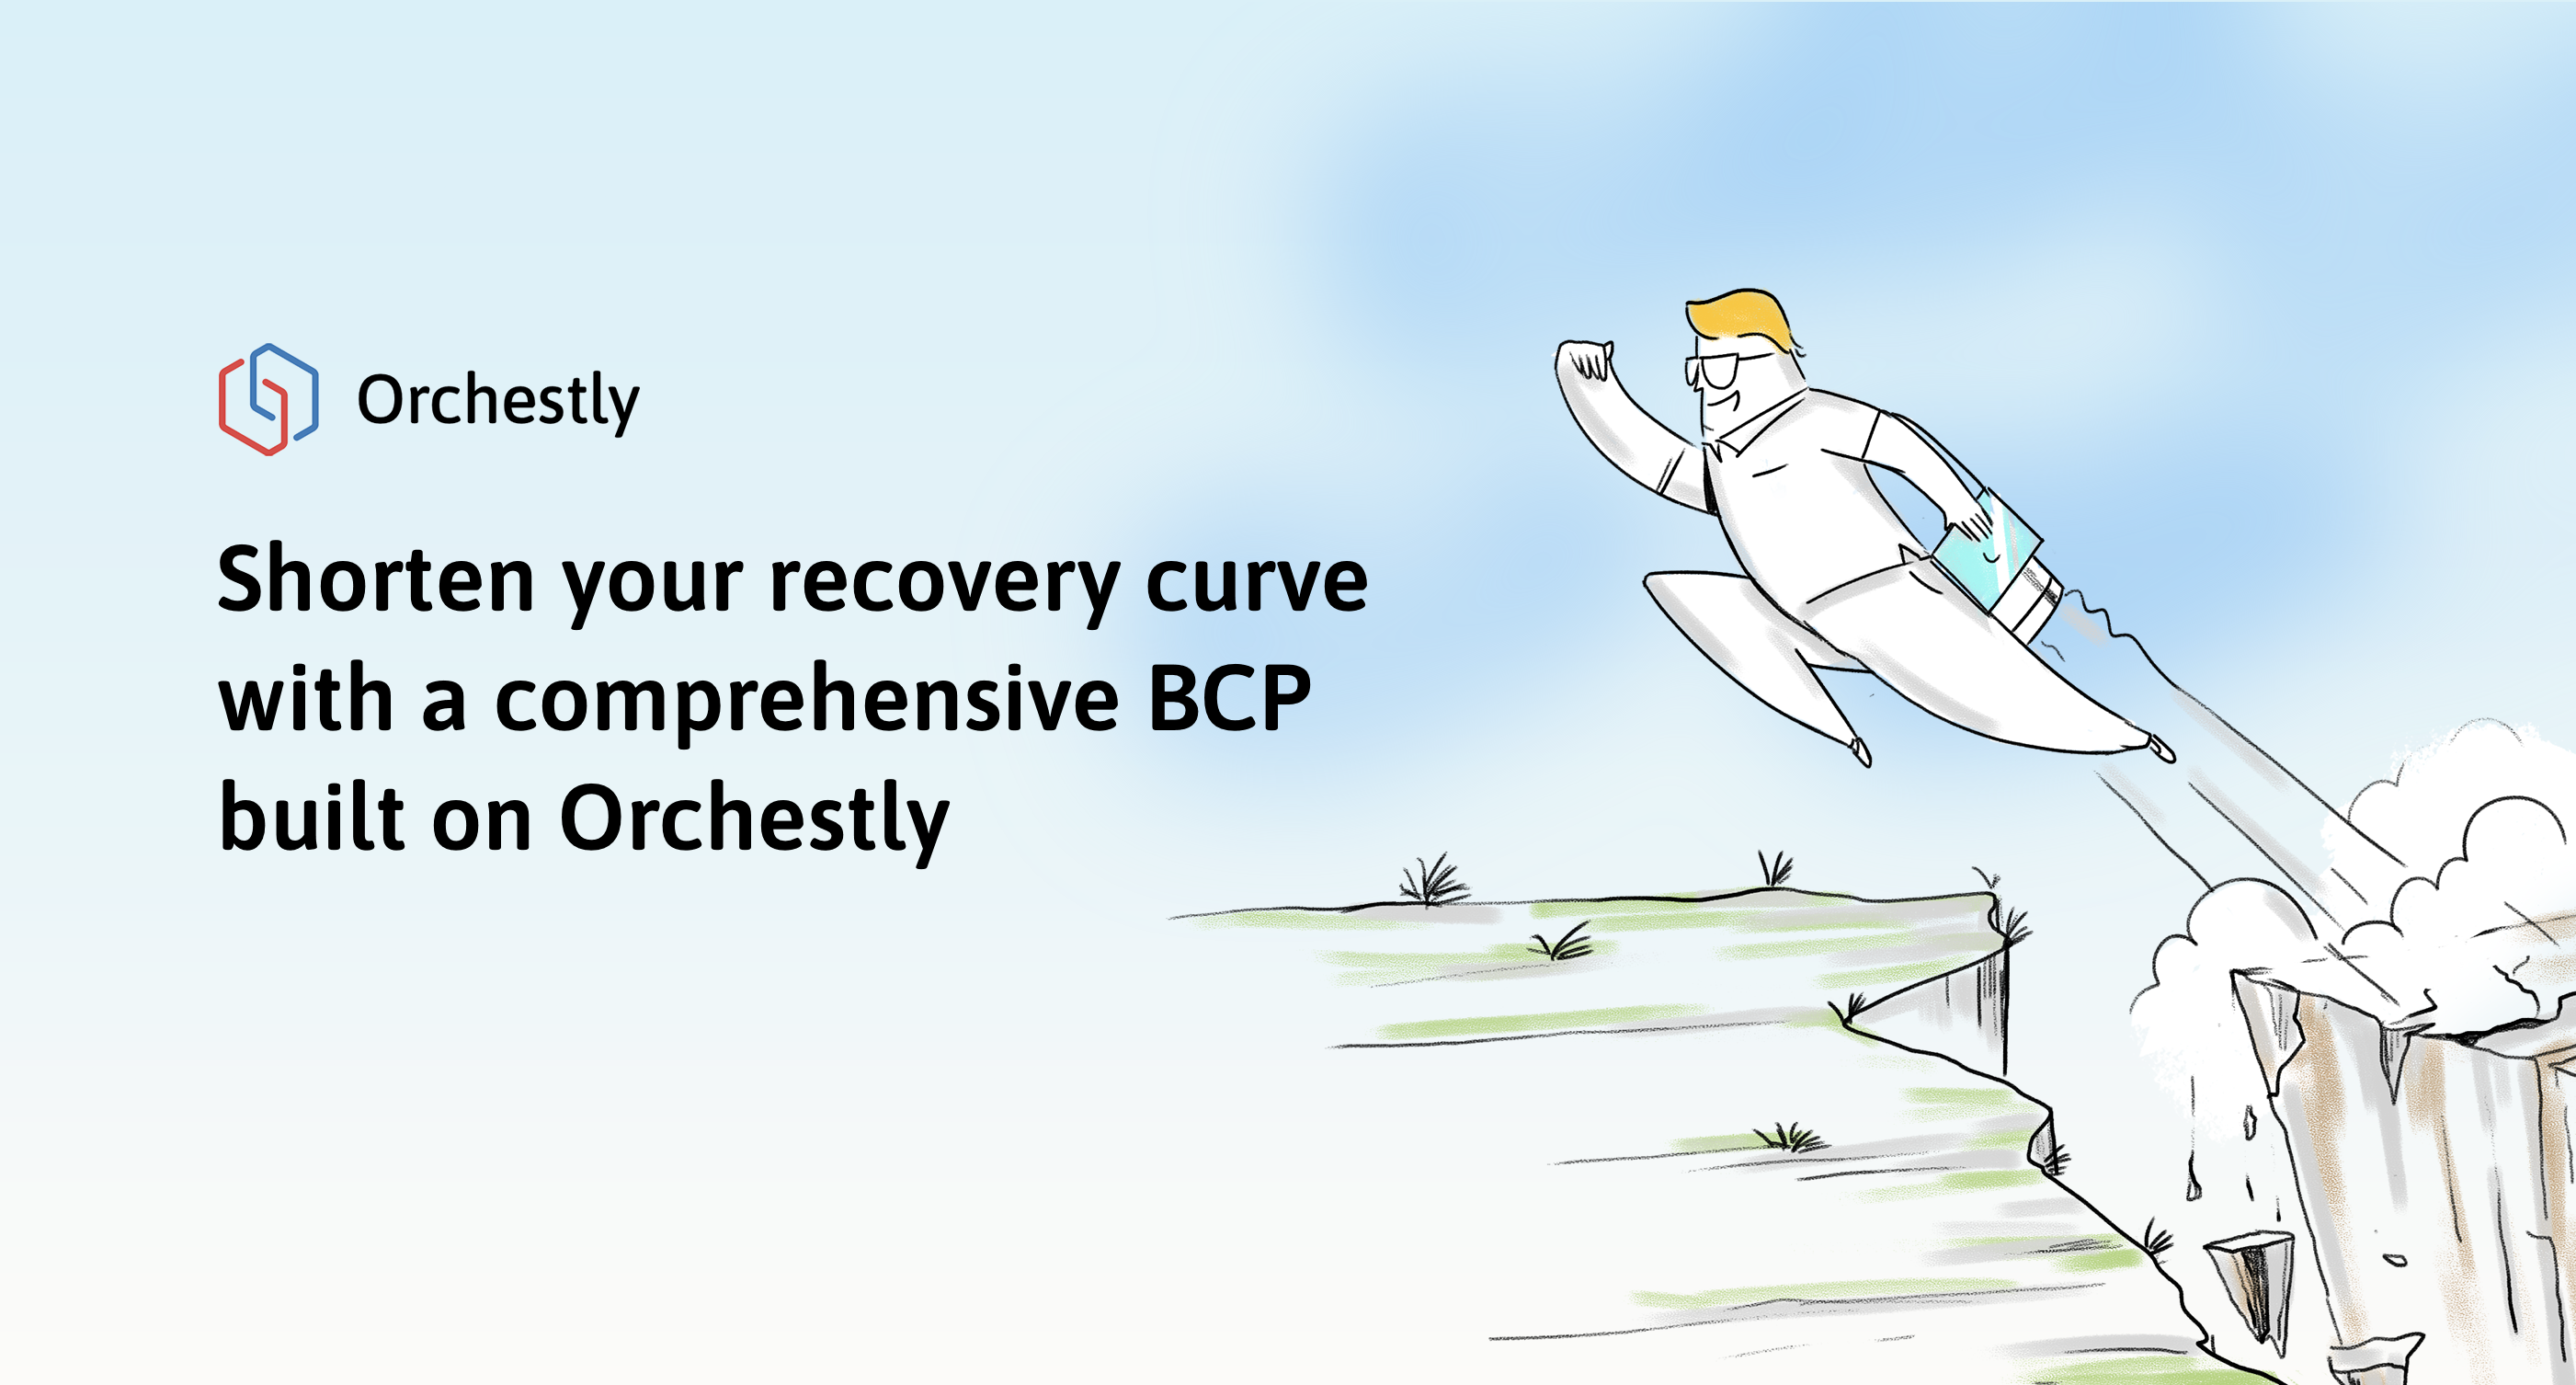 Shorten your recovery curve with a comprehensive BCP built on Orchestly